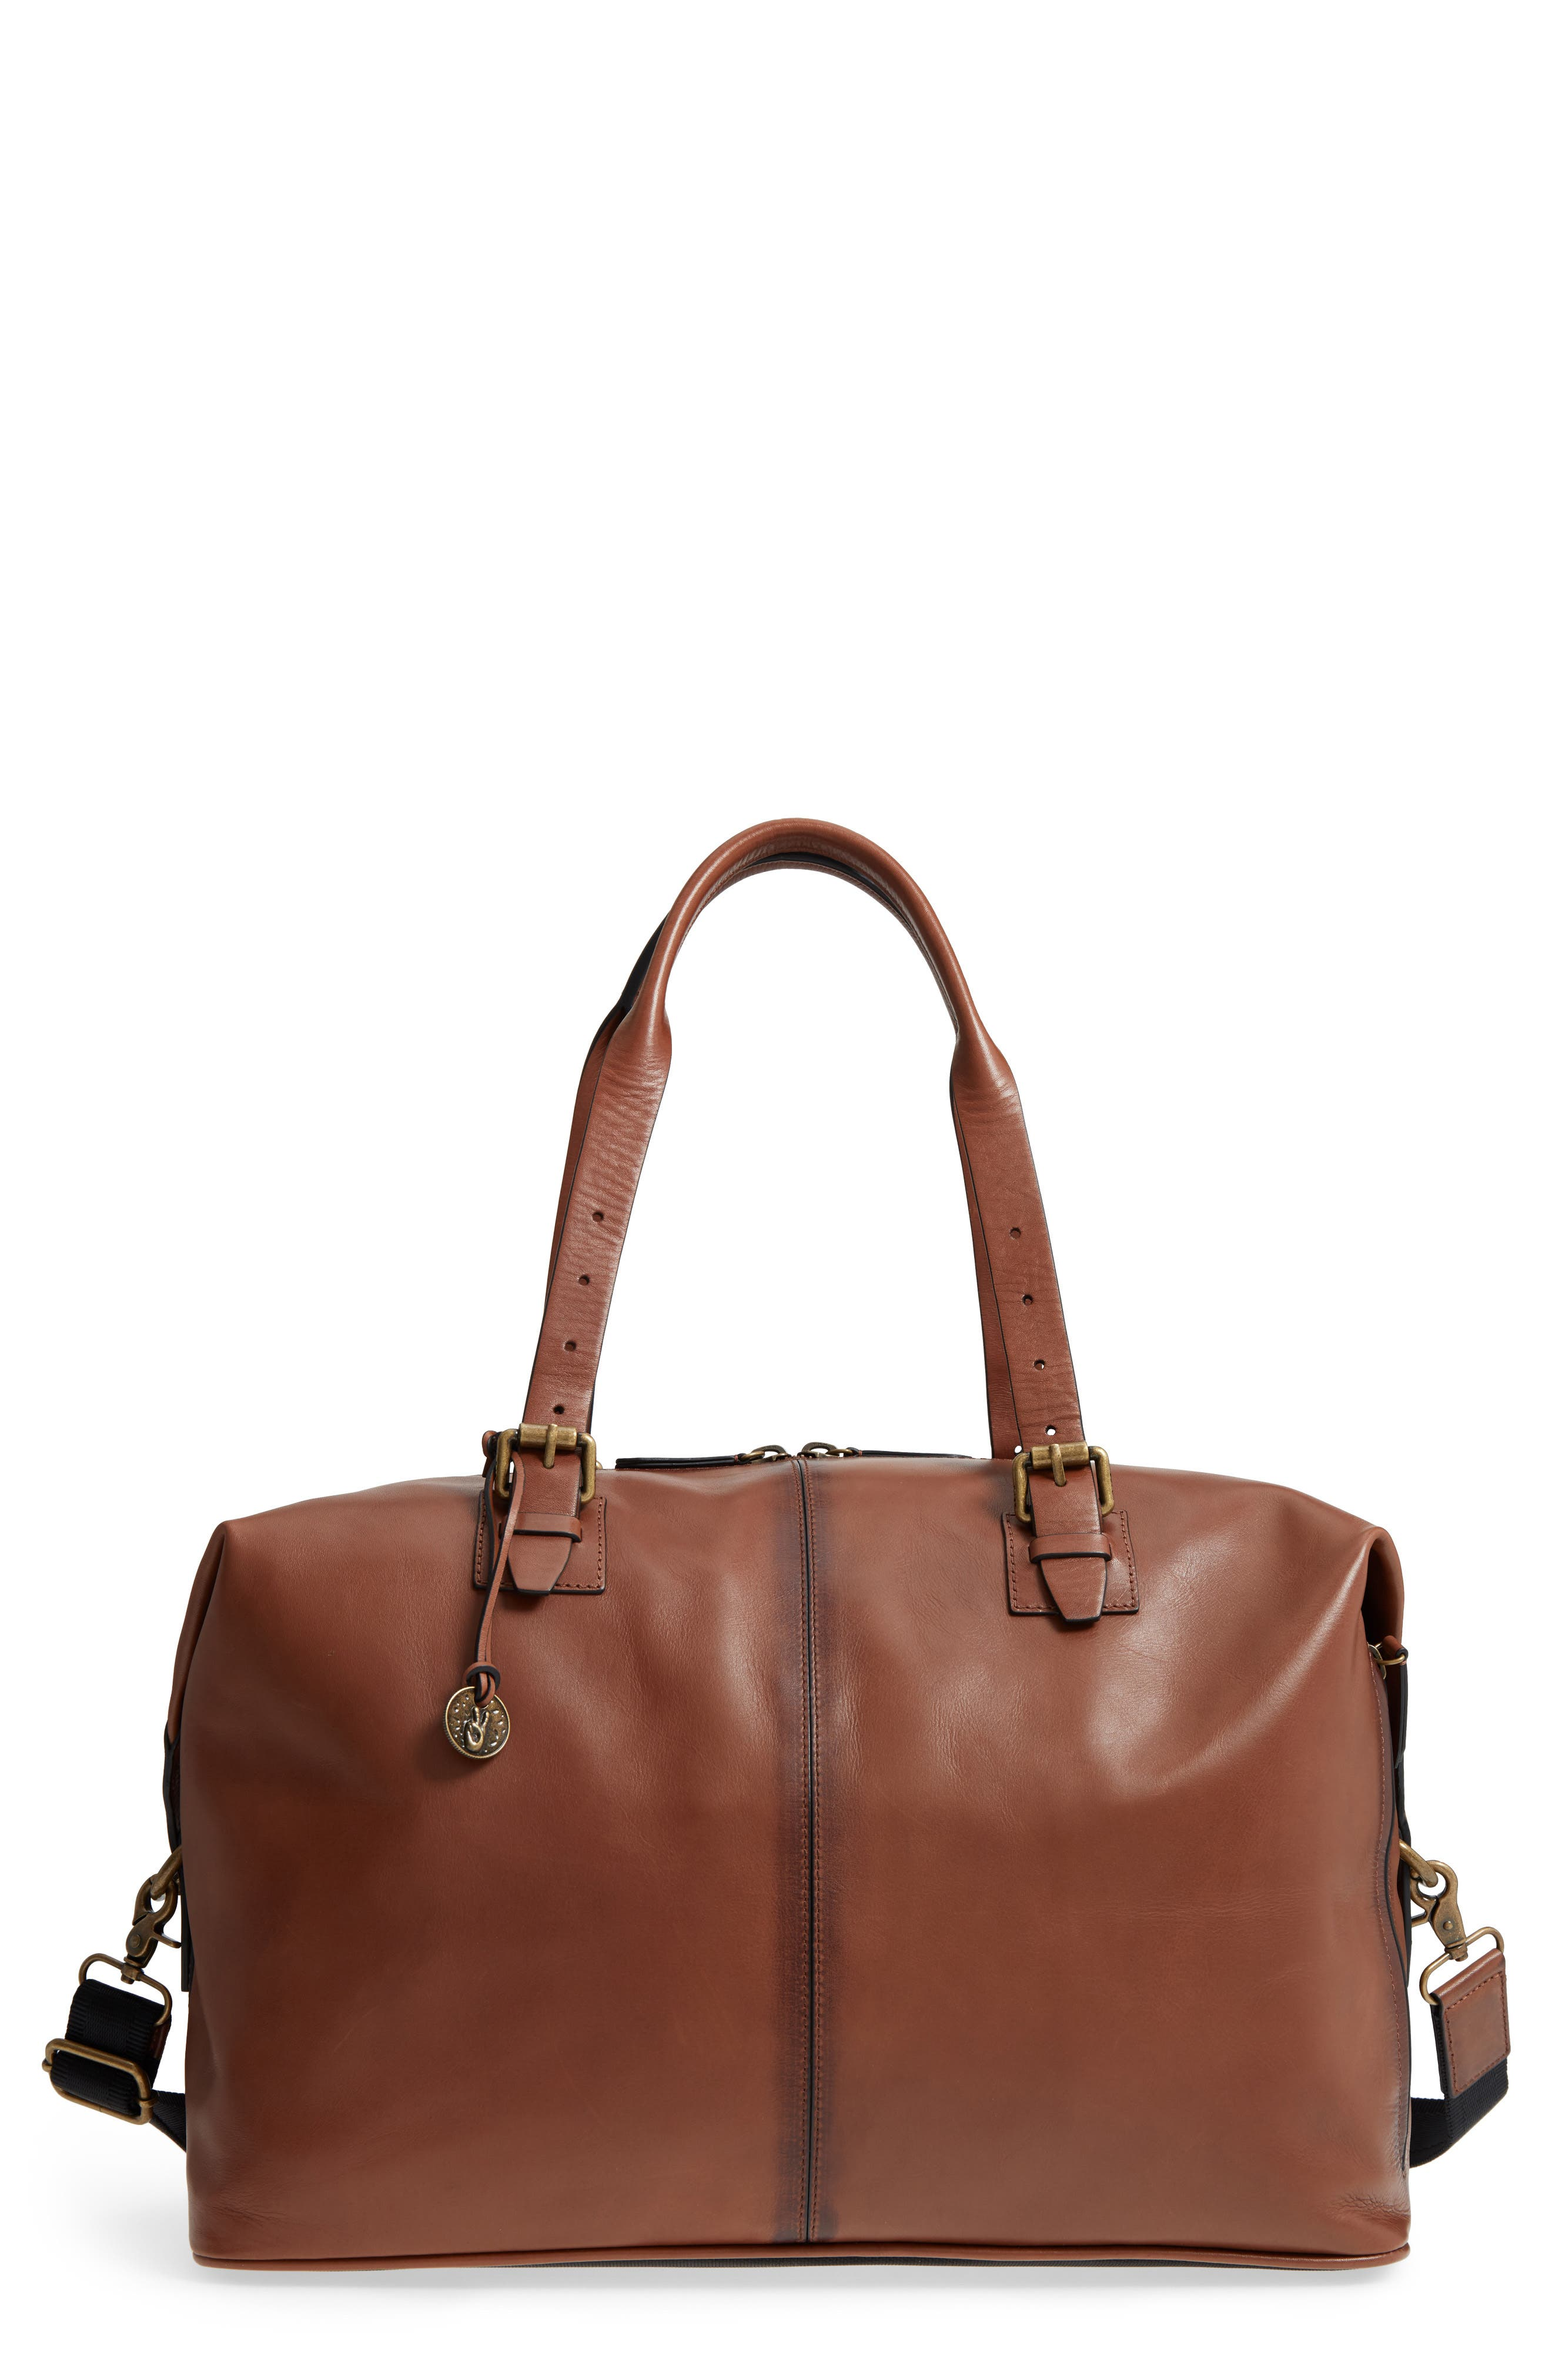 Heritage Leather Duffel Bag,                             Main thumbnail 1, color,                             Brownstone